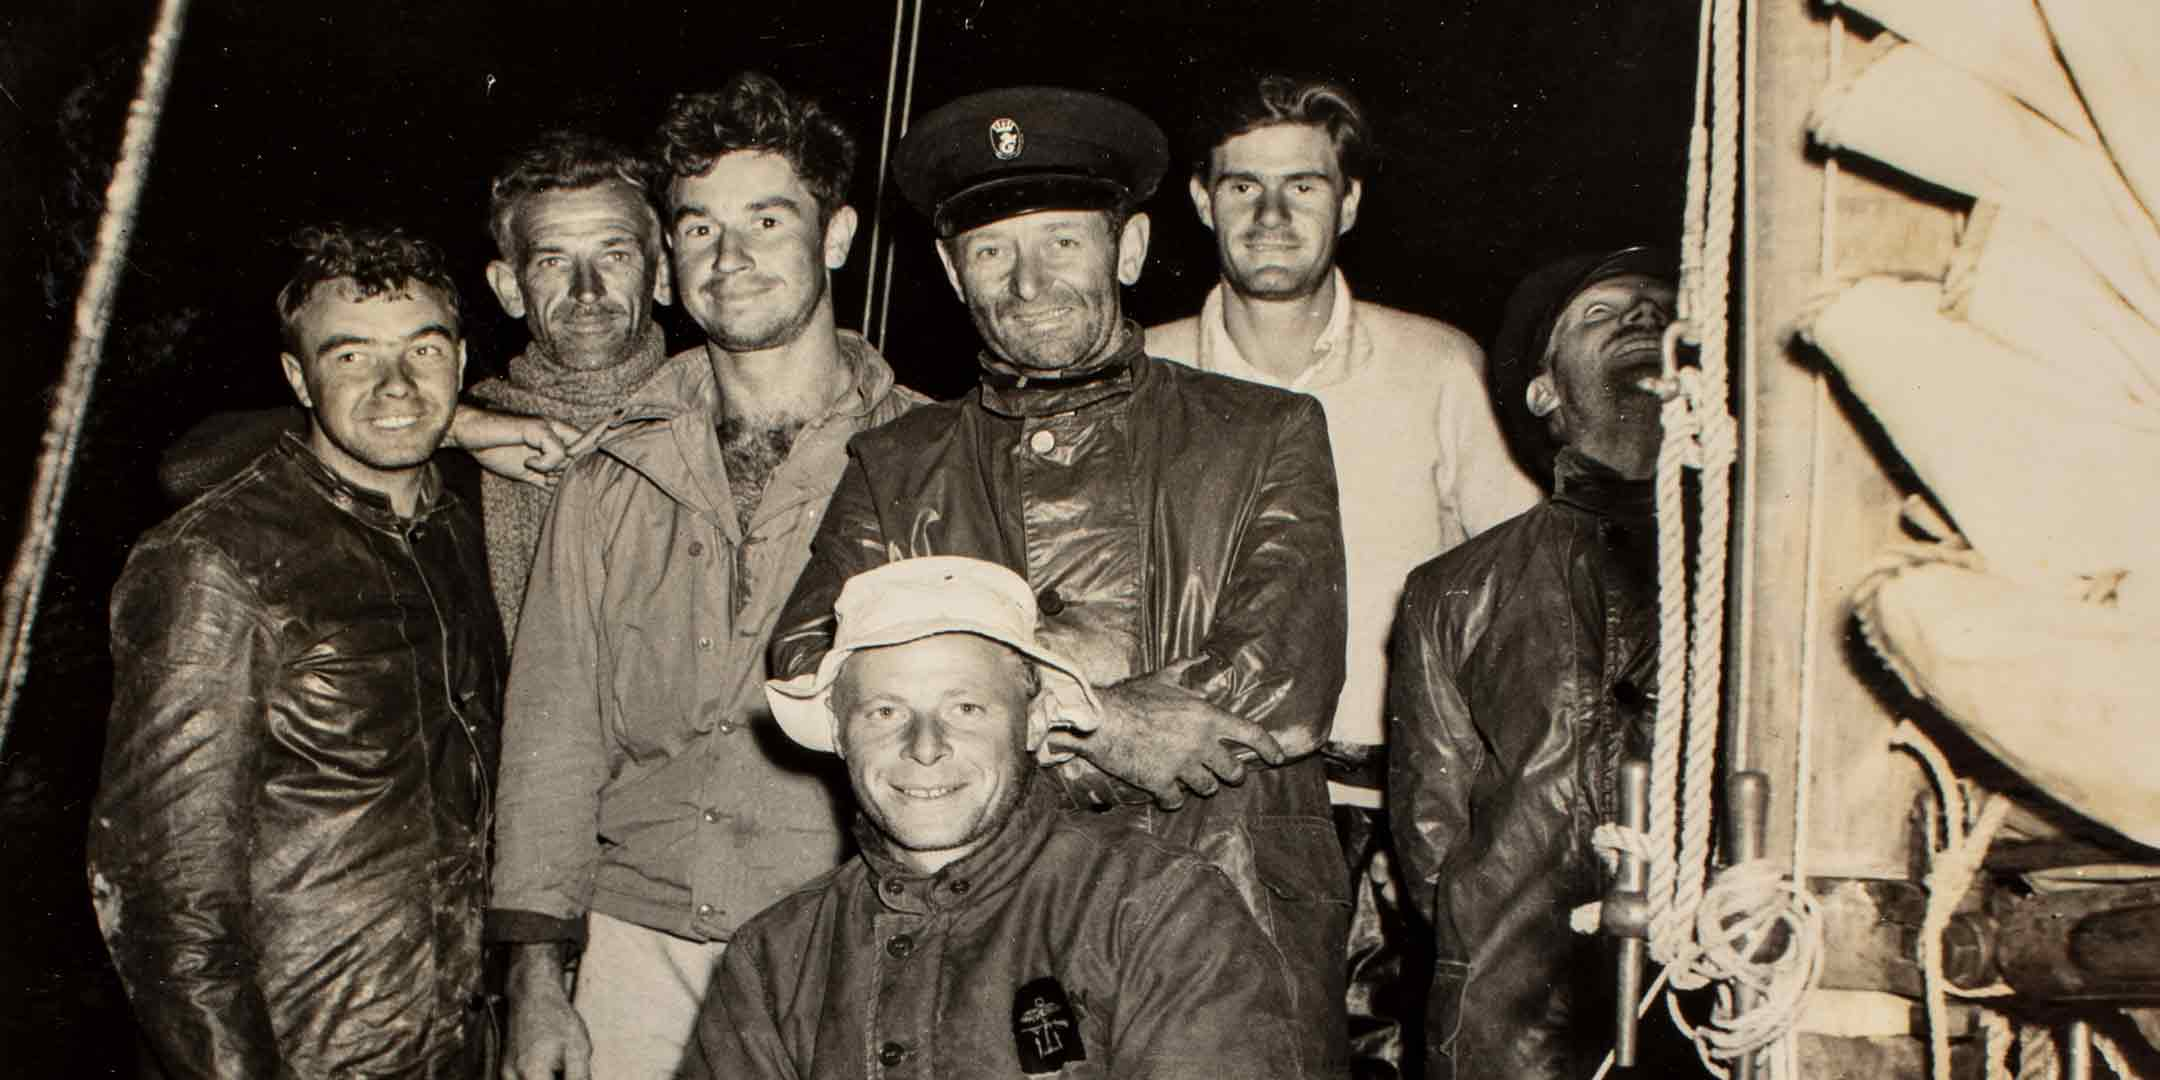 Skipper Captain John Illingworth (centre standing in cap) with the crew of Rani, the winner of the first Sydney to Hobart Yacht Race, 1.45am, 2 January 1946. ANMM Collection 00048228_003, Gift from Alison Richmond